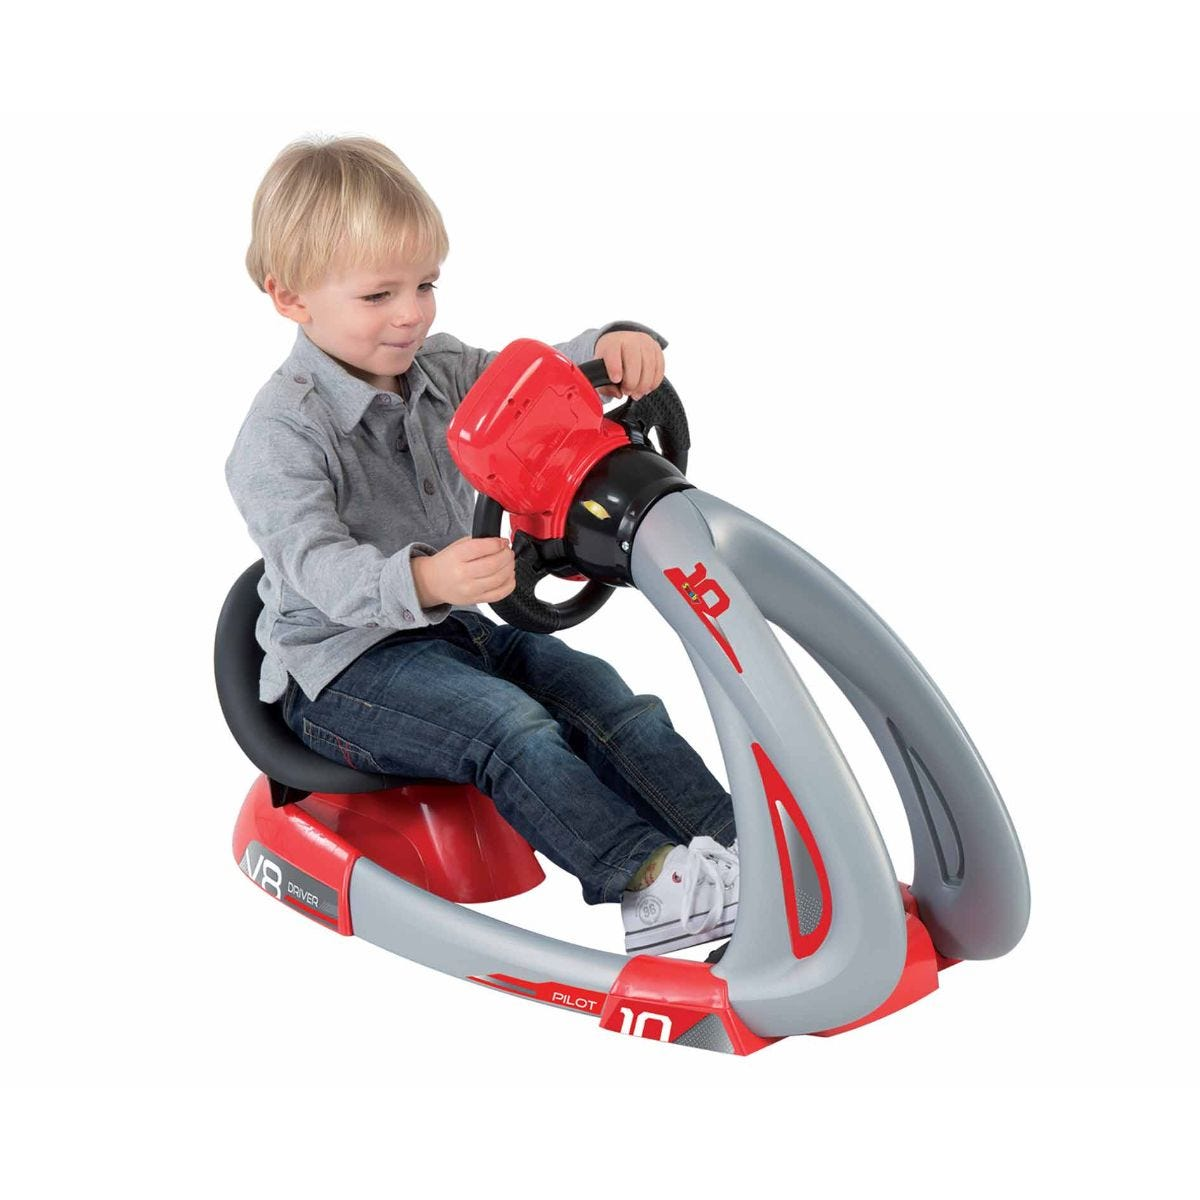 Charles Bentley Smoby Kids Driving Simulator Car, Red